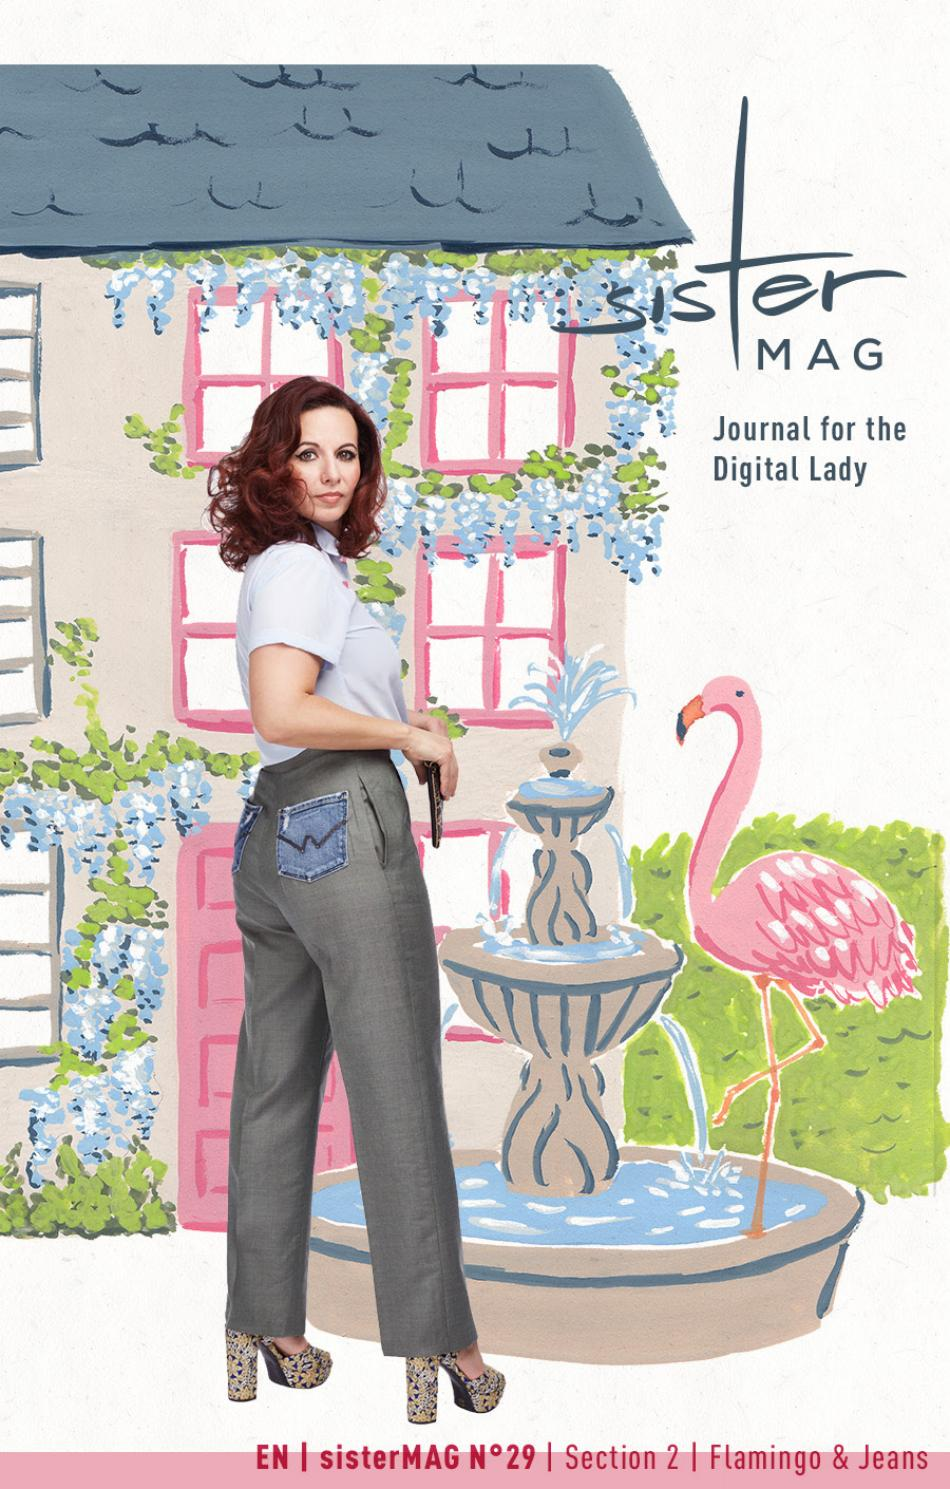 c8fdcfe78 sisterMAG 29 – Flamingo   Jeans – Section 2 by sisterMAG - issuu